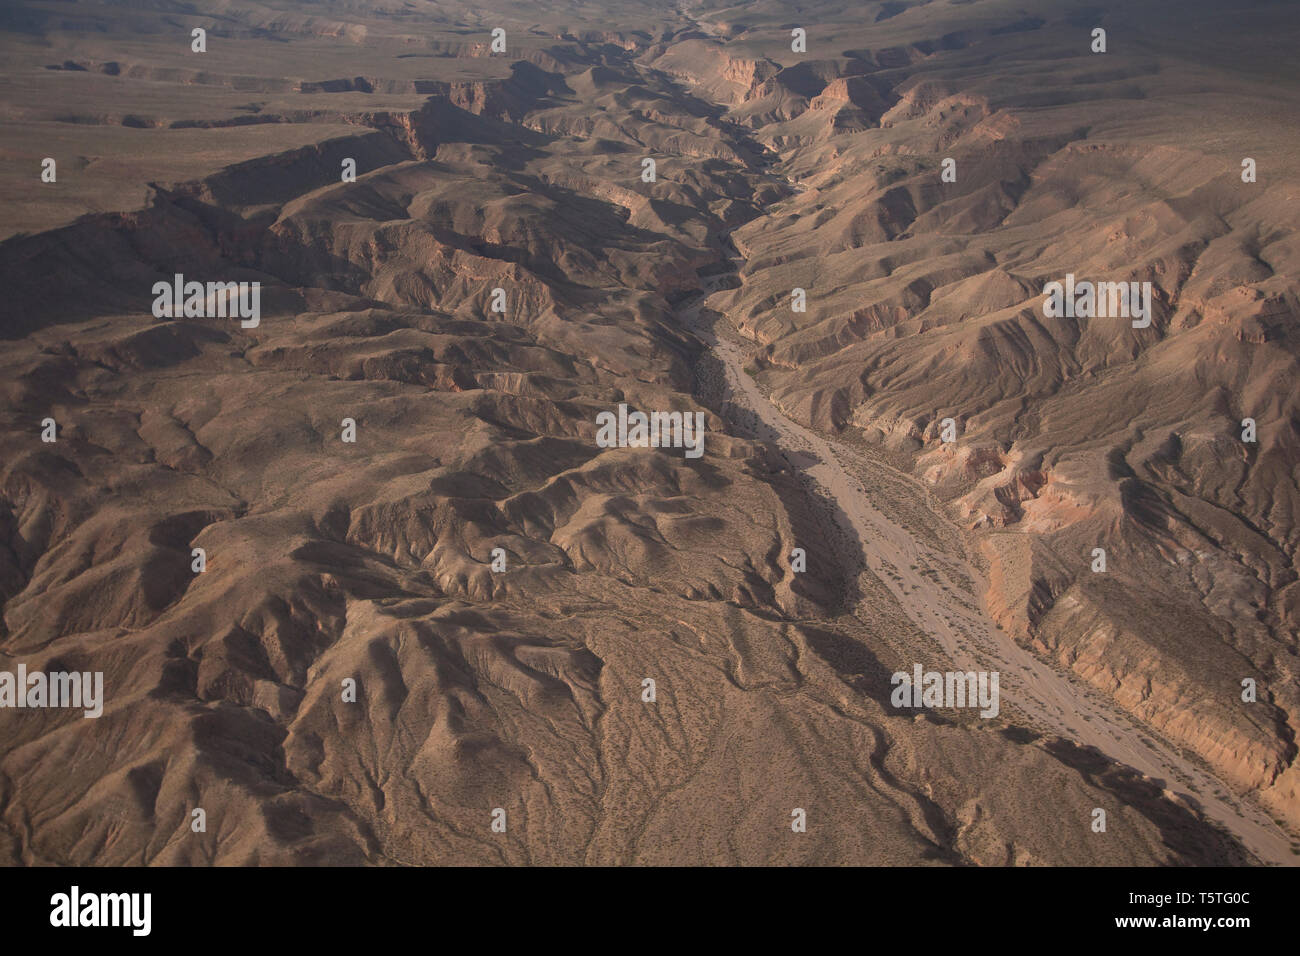 Aerial of desert patterns in the Lake Mead National Recreation Area, Arizona Stock Photo